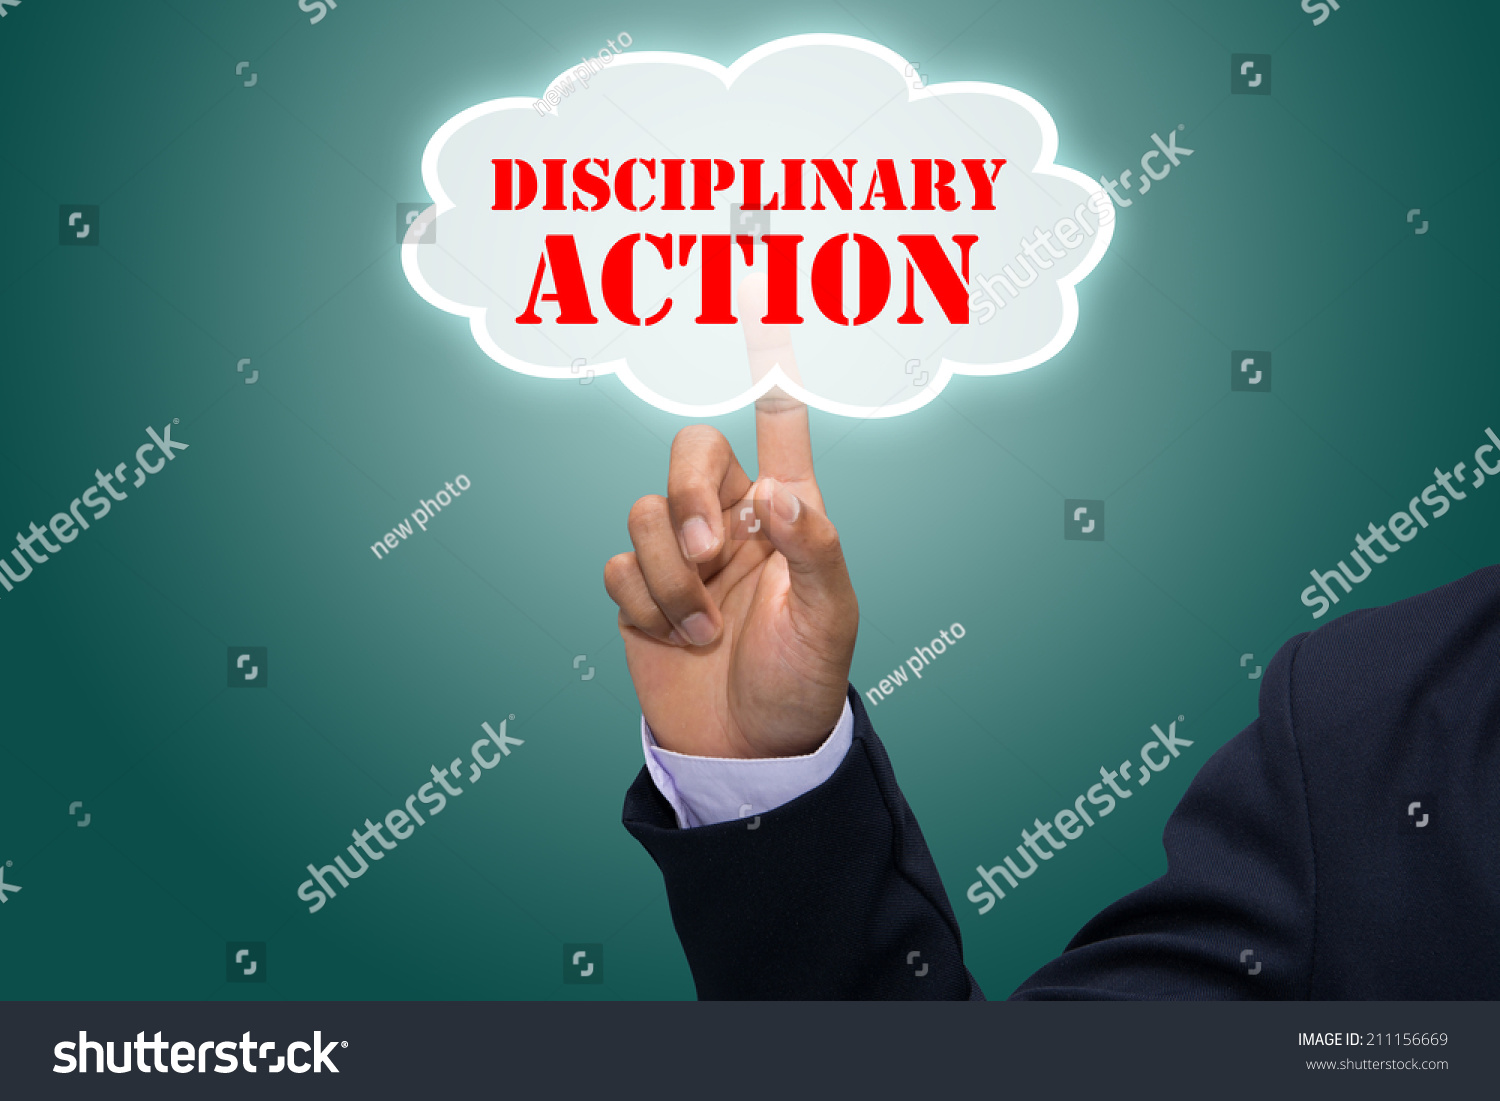 disciplinary action in organization Define discipline describe the disciplinary action procedure which has taken place in your organization or any organization you are familiar with.